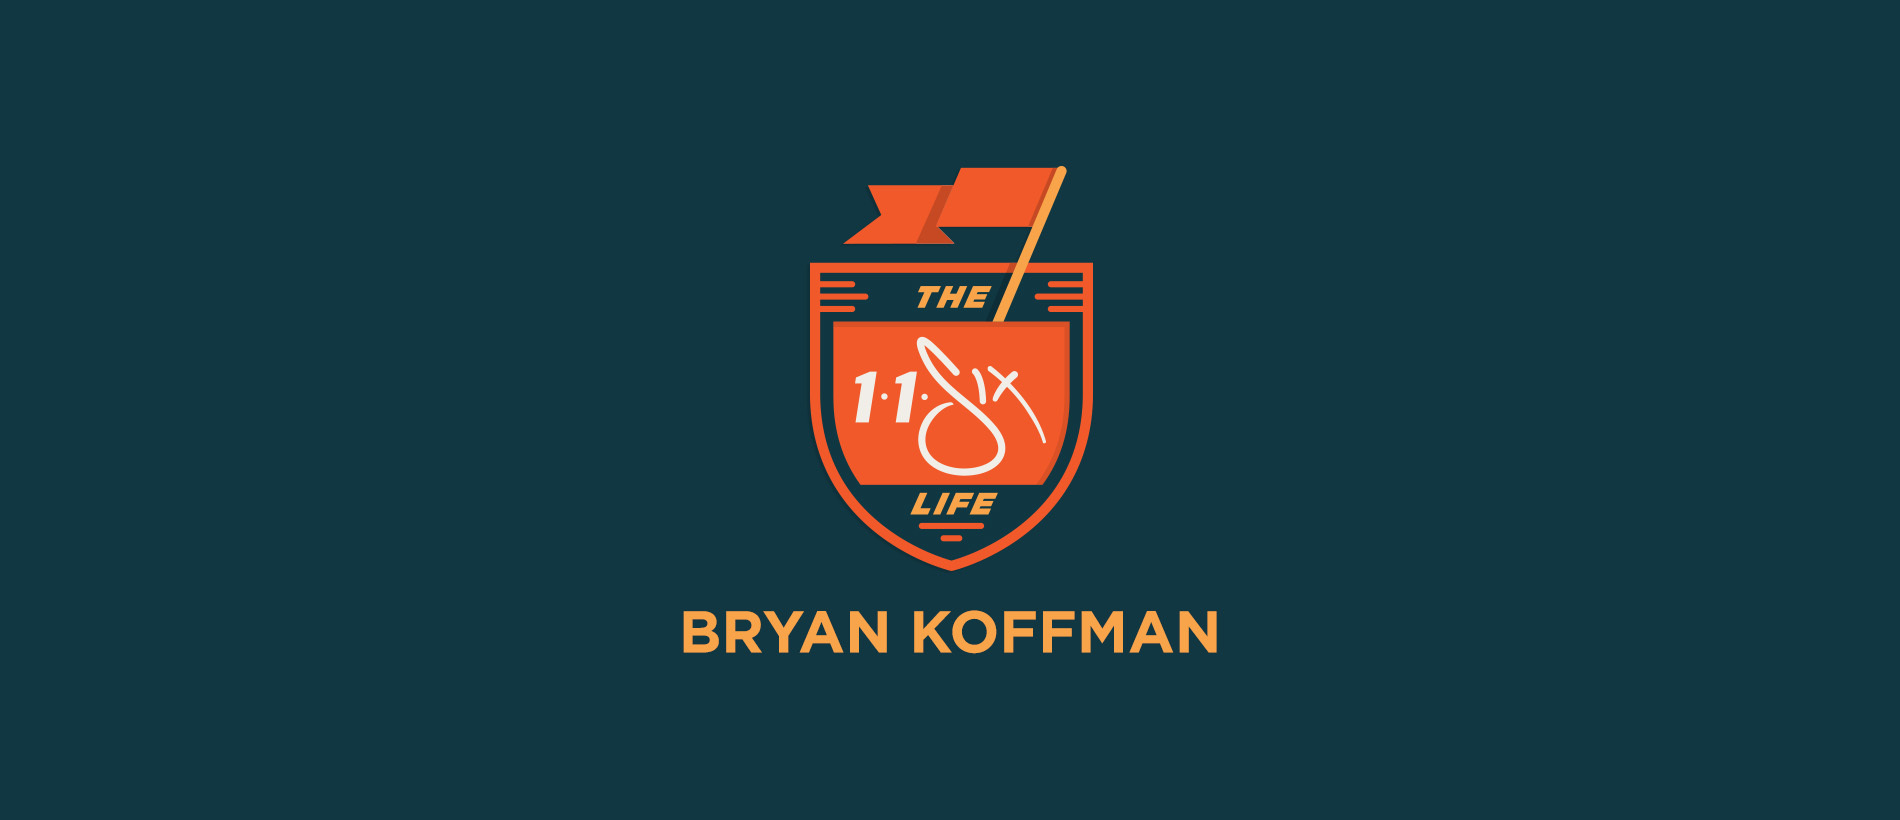 The 116 Life x Bryan Koffman